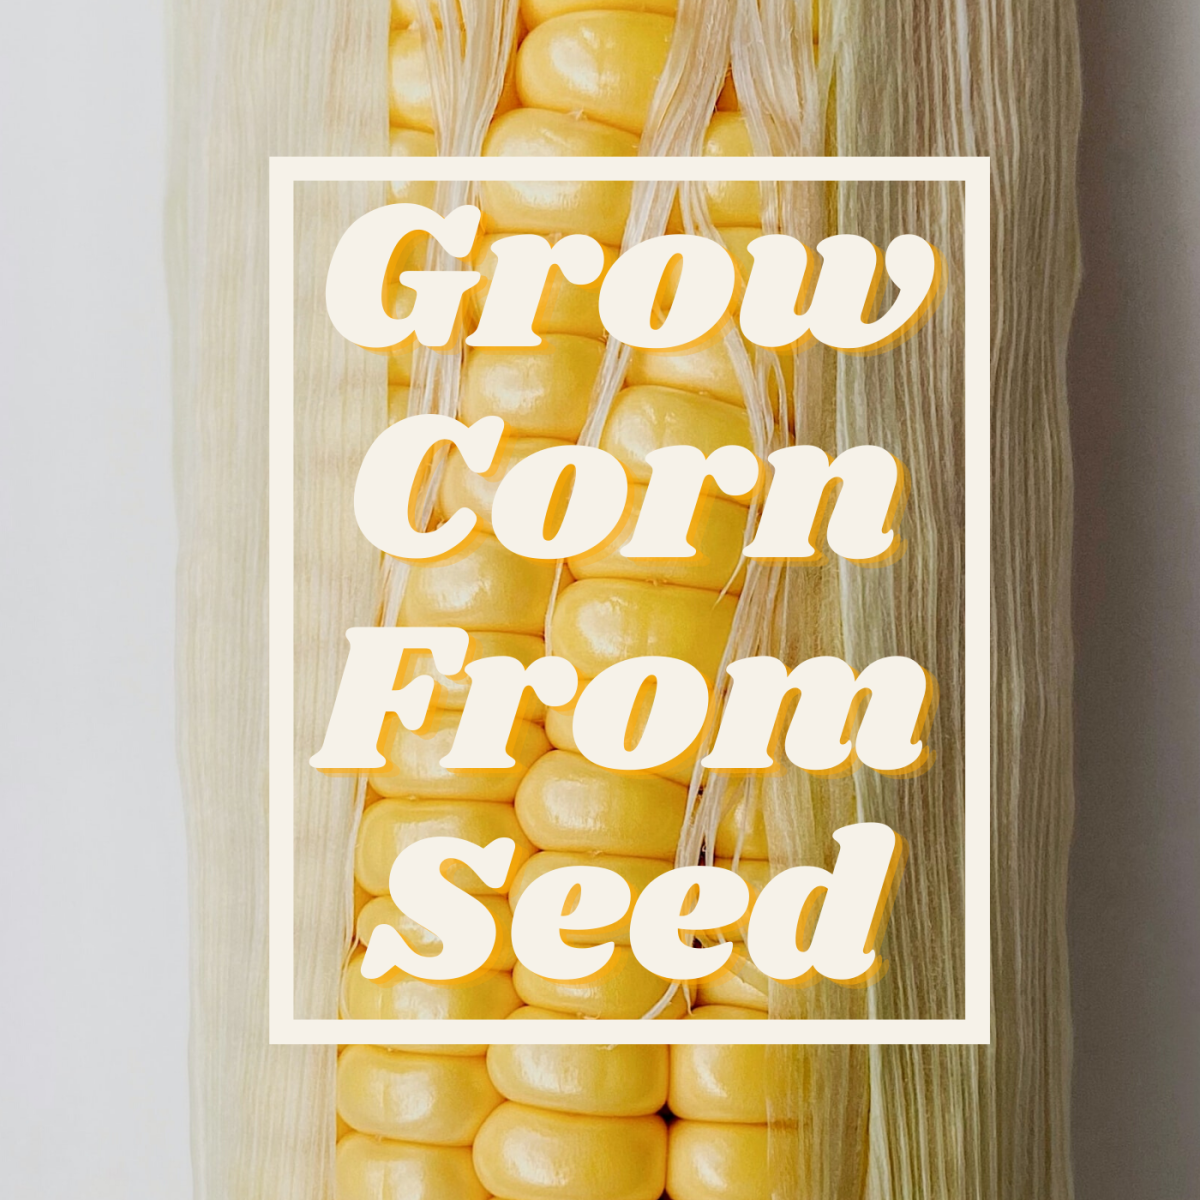 Learn how to grow corn from seed in your own backyard.